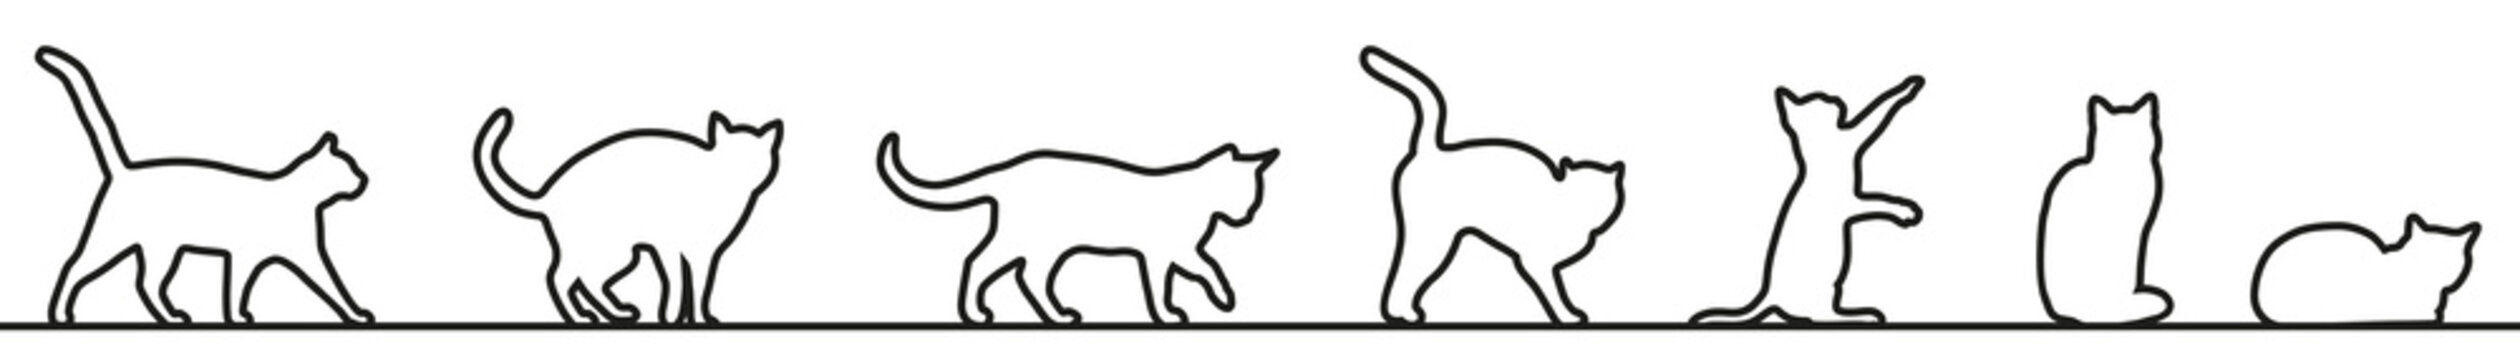 Cats silhouette collection one line – stock vector